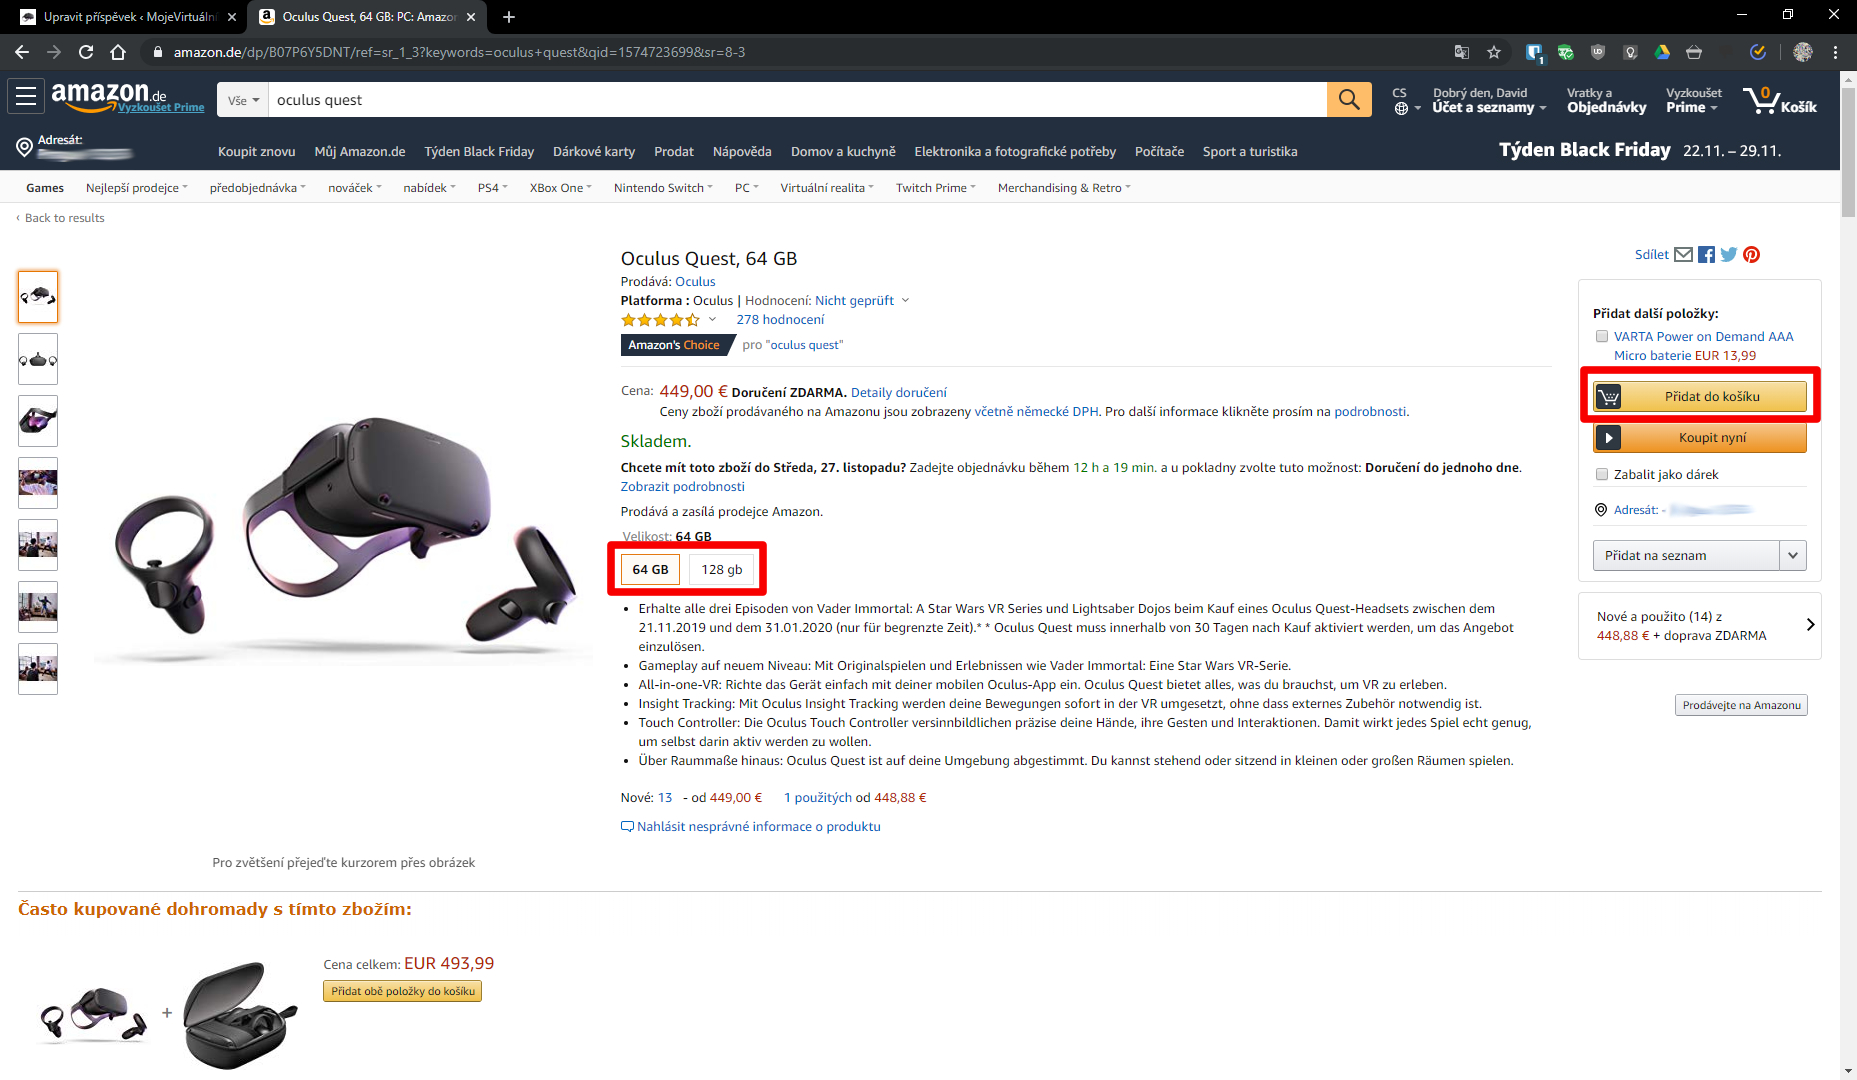 oculus vyber produktu a pridani do kosiku amazon